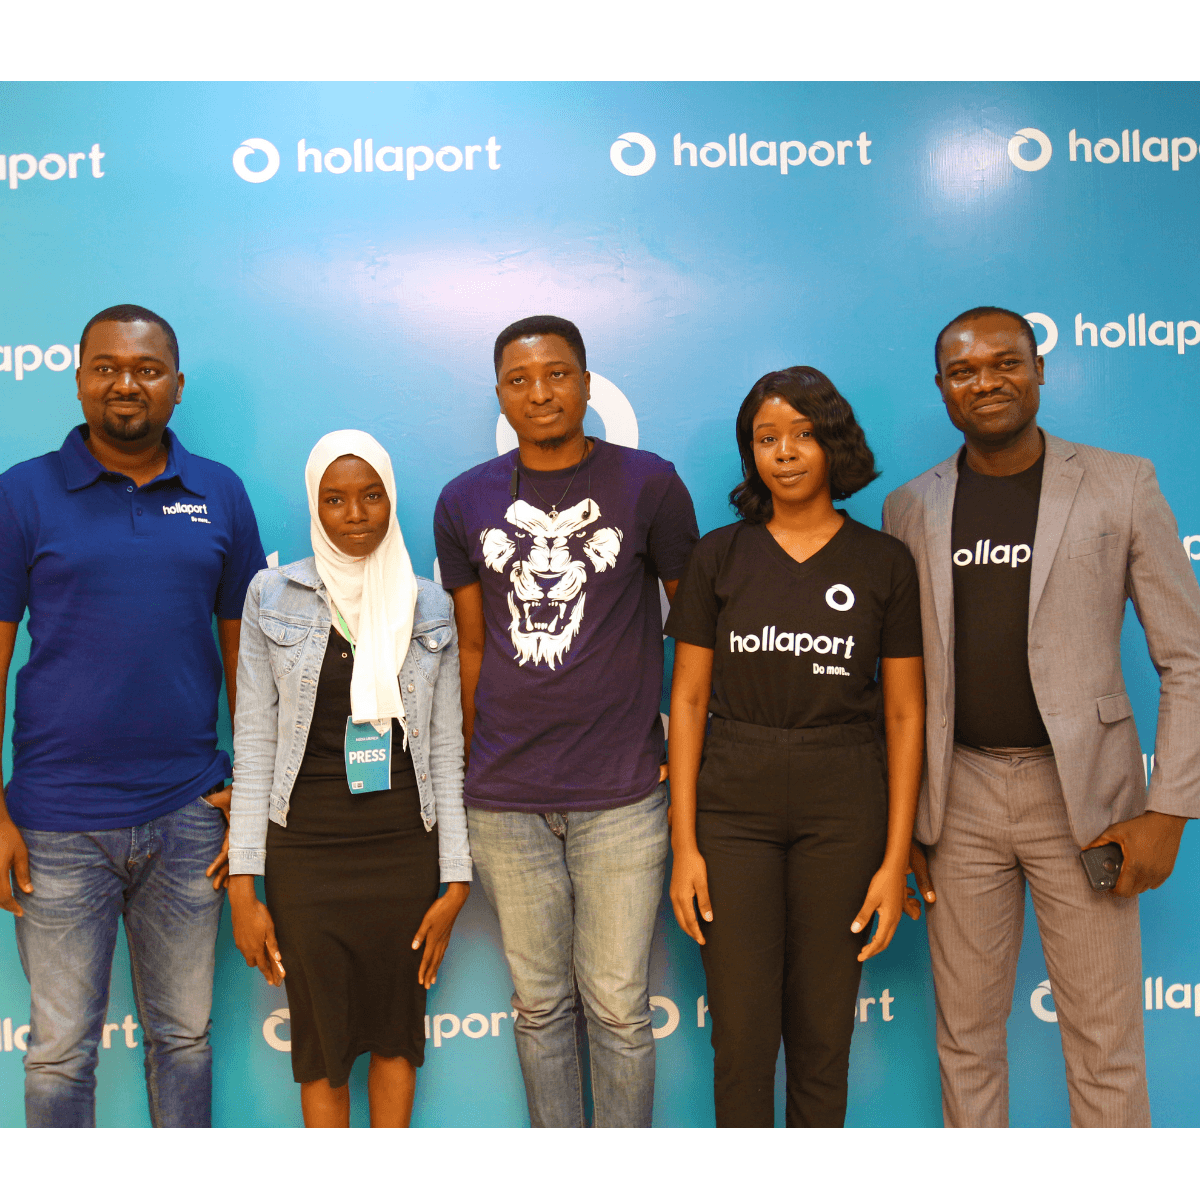 Hollaport media launch